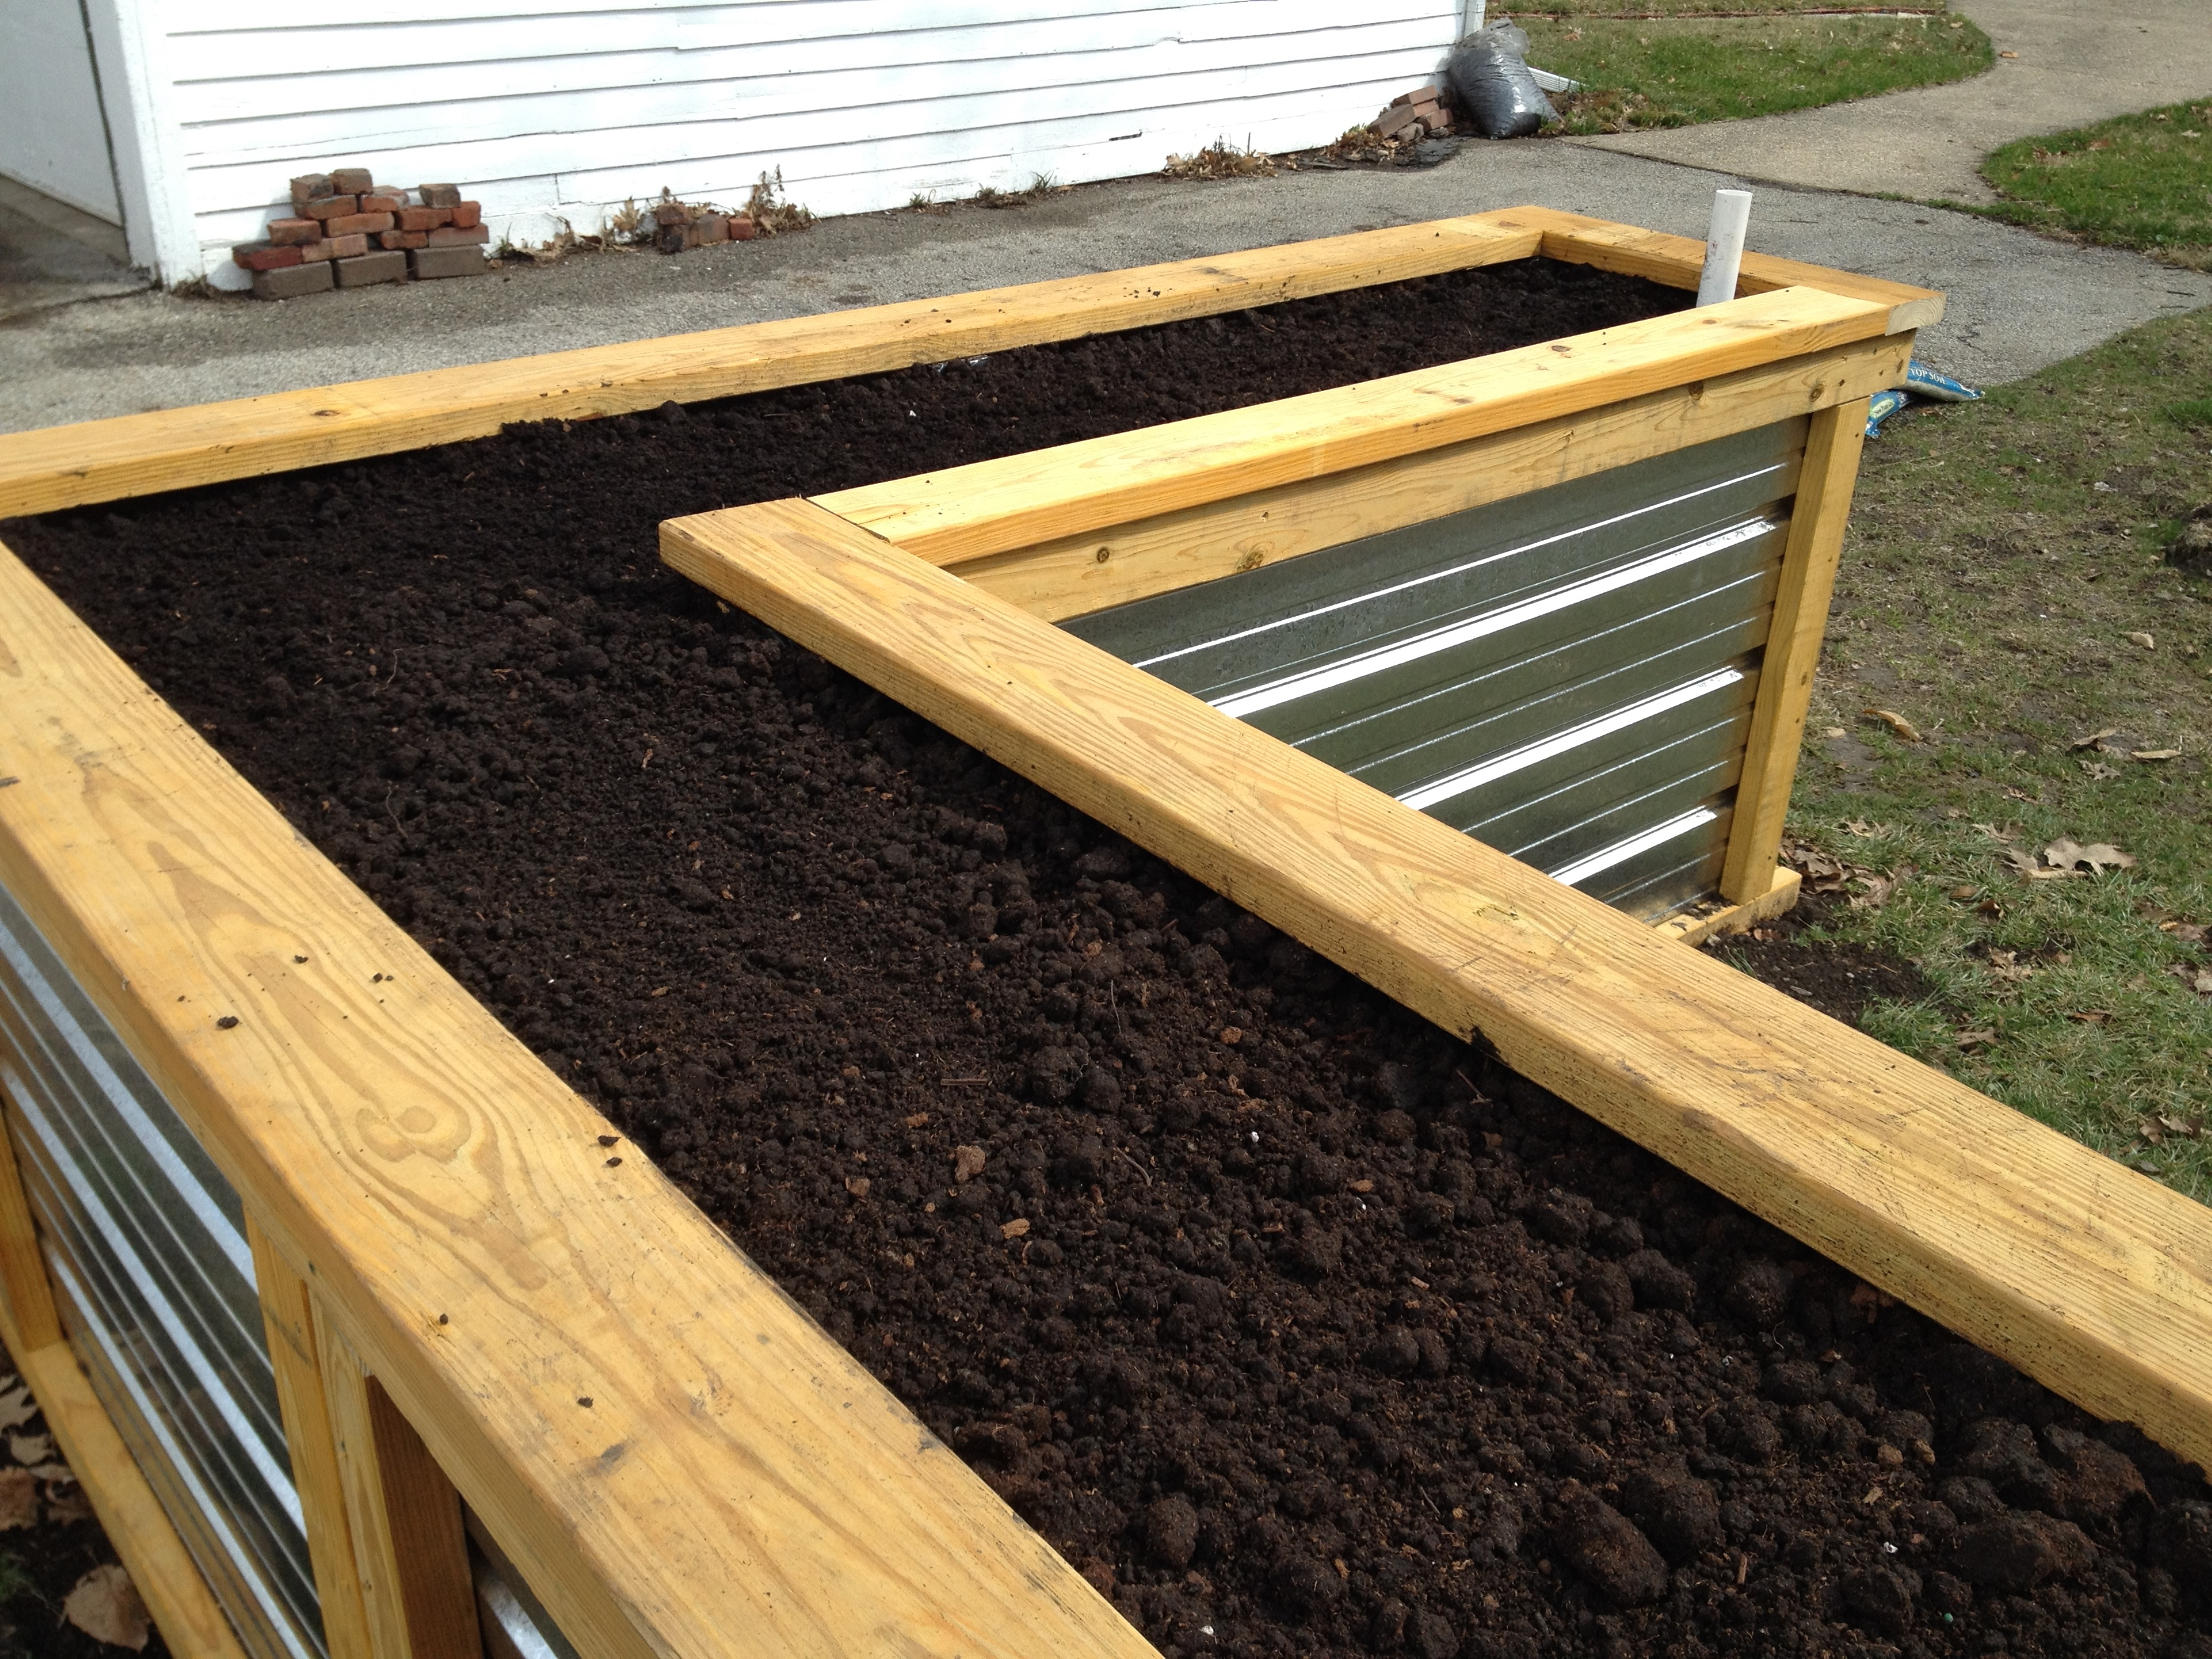 Building a Self Watering Raised Garden Bed Frugal Living